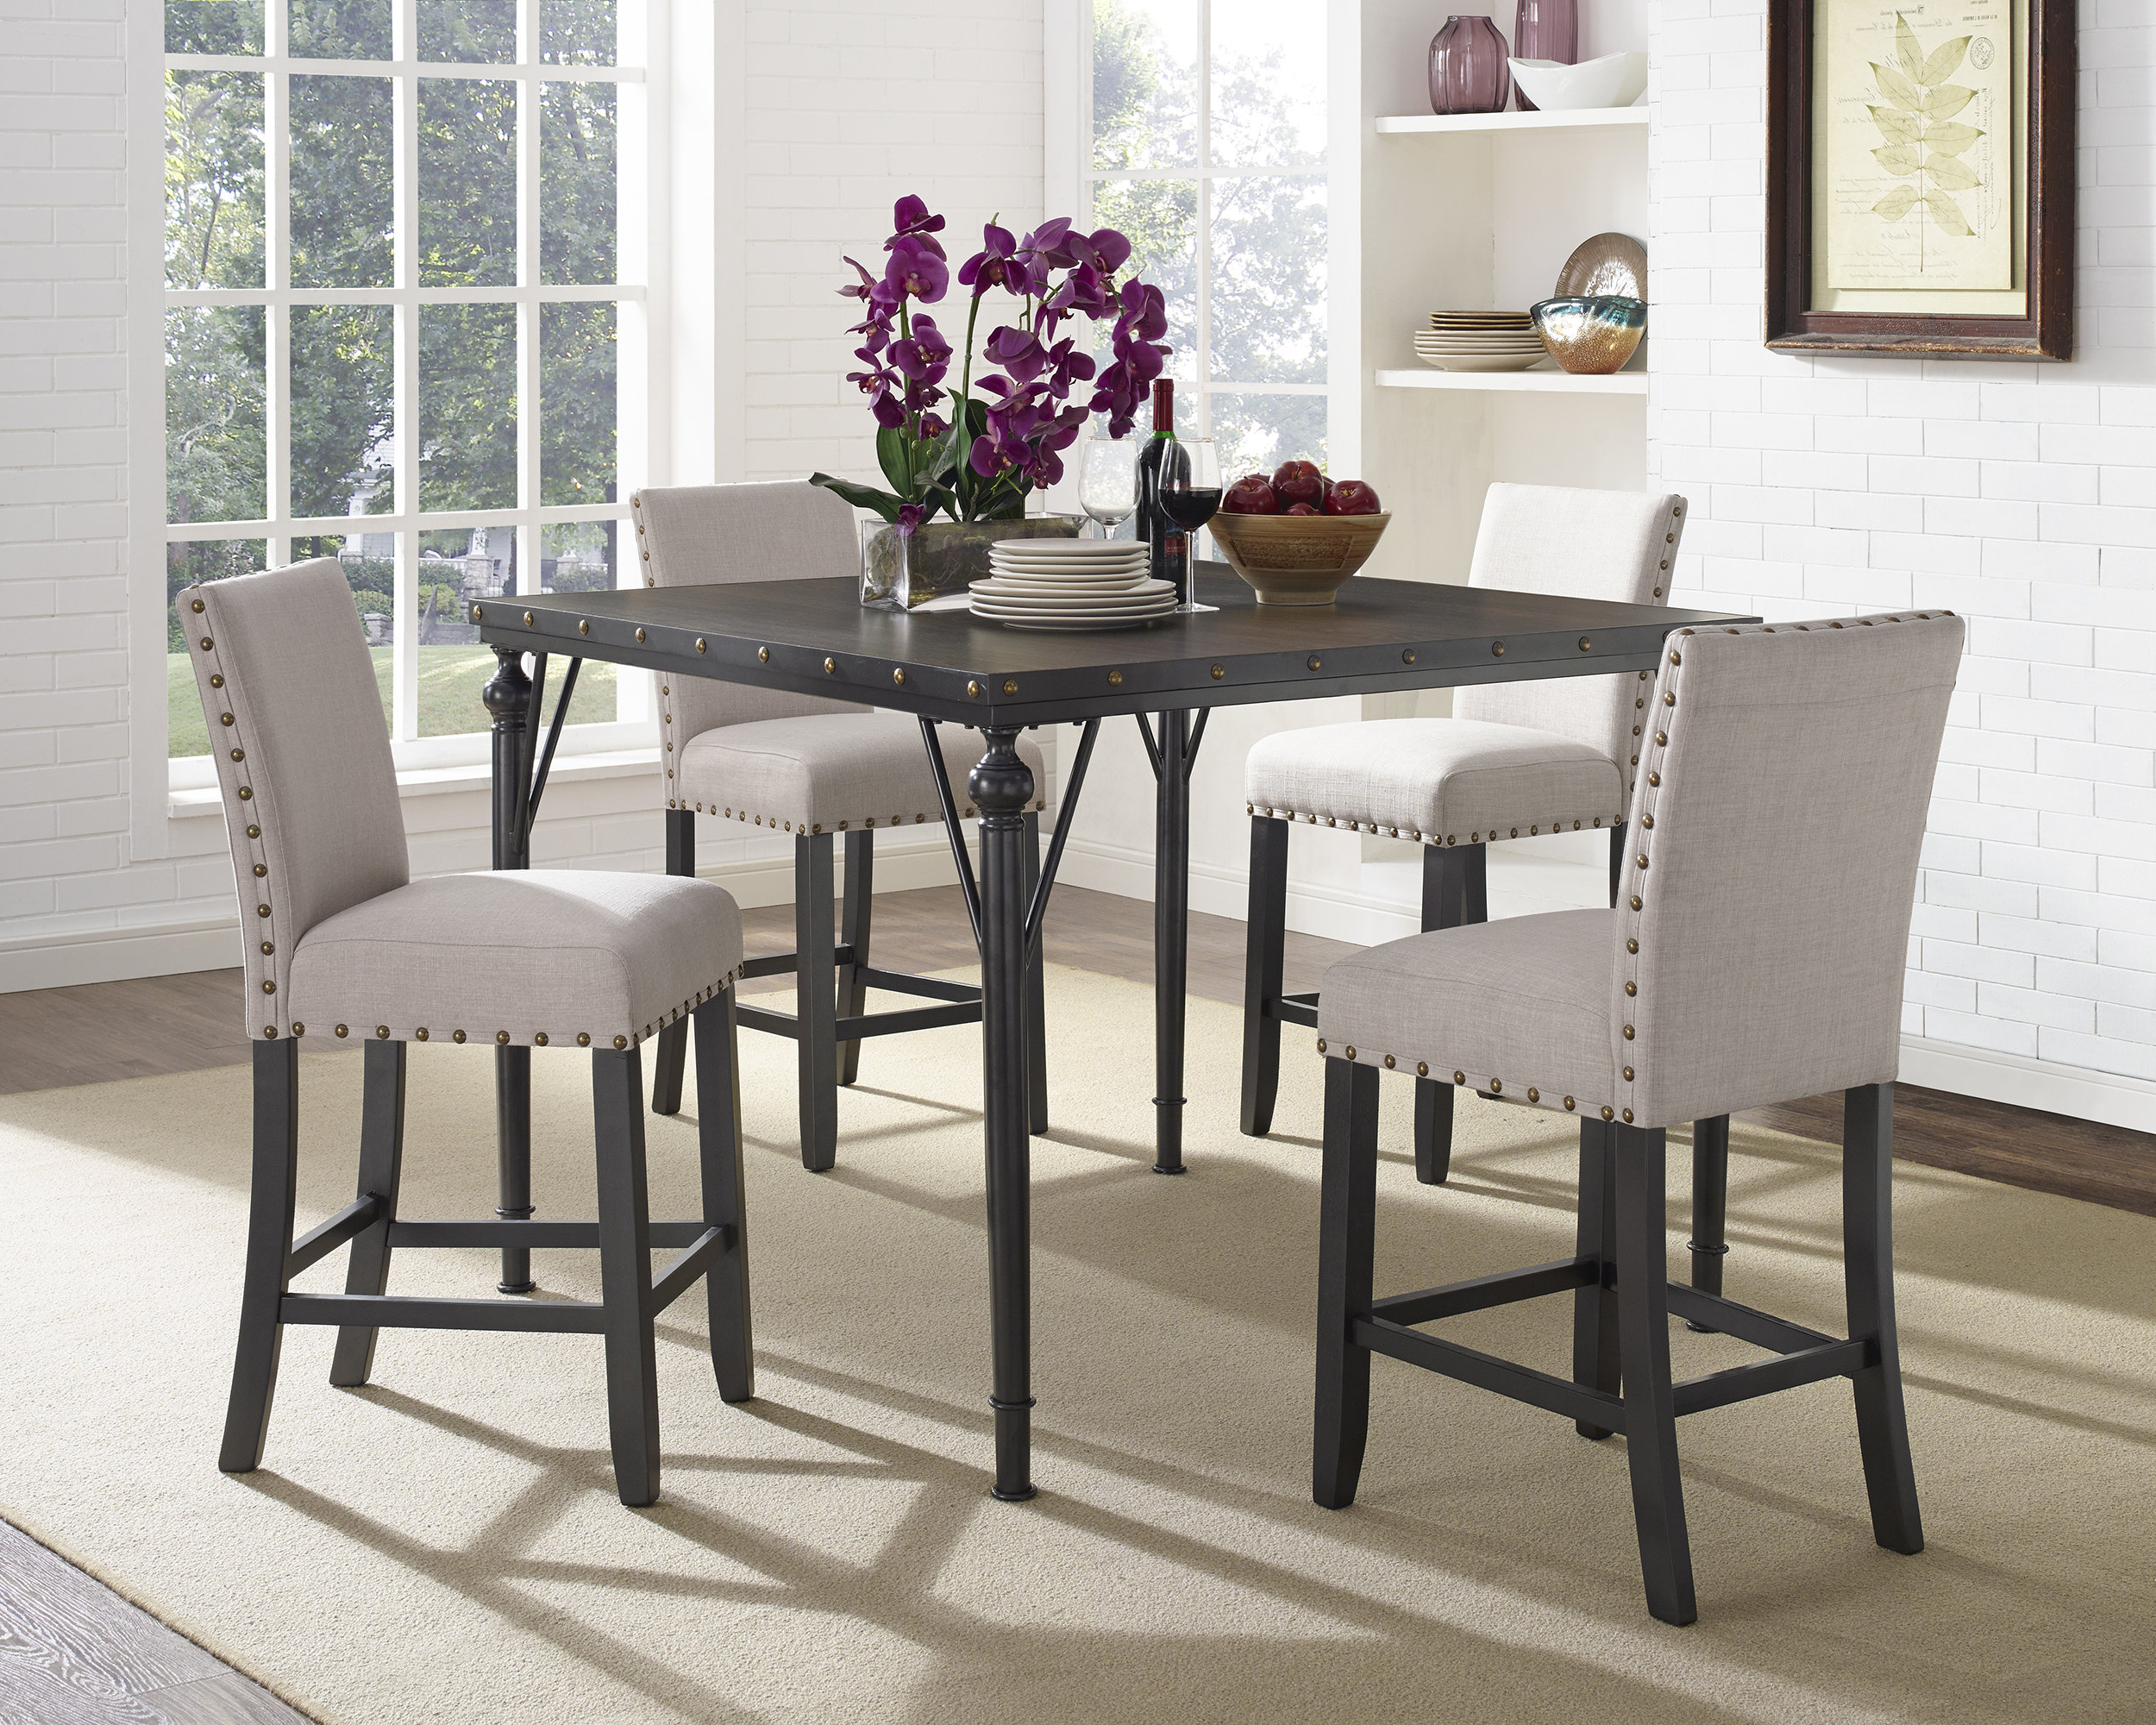 Haysi Wood Counter Height 5 Piece Dining Set With Fabric Nailhead Chairs Intended For Latest Bryson 5 Piece Dining Sets (View 8 of 20)